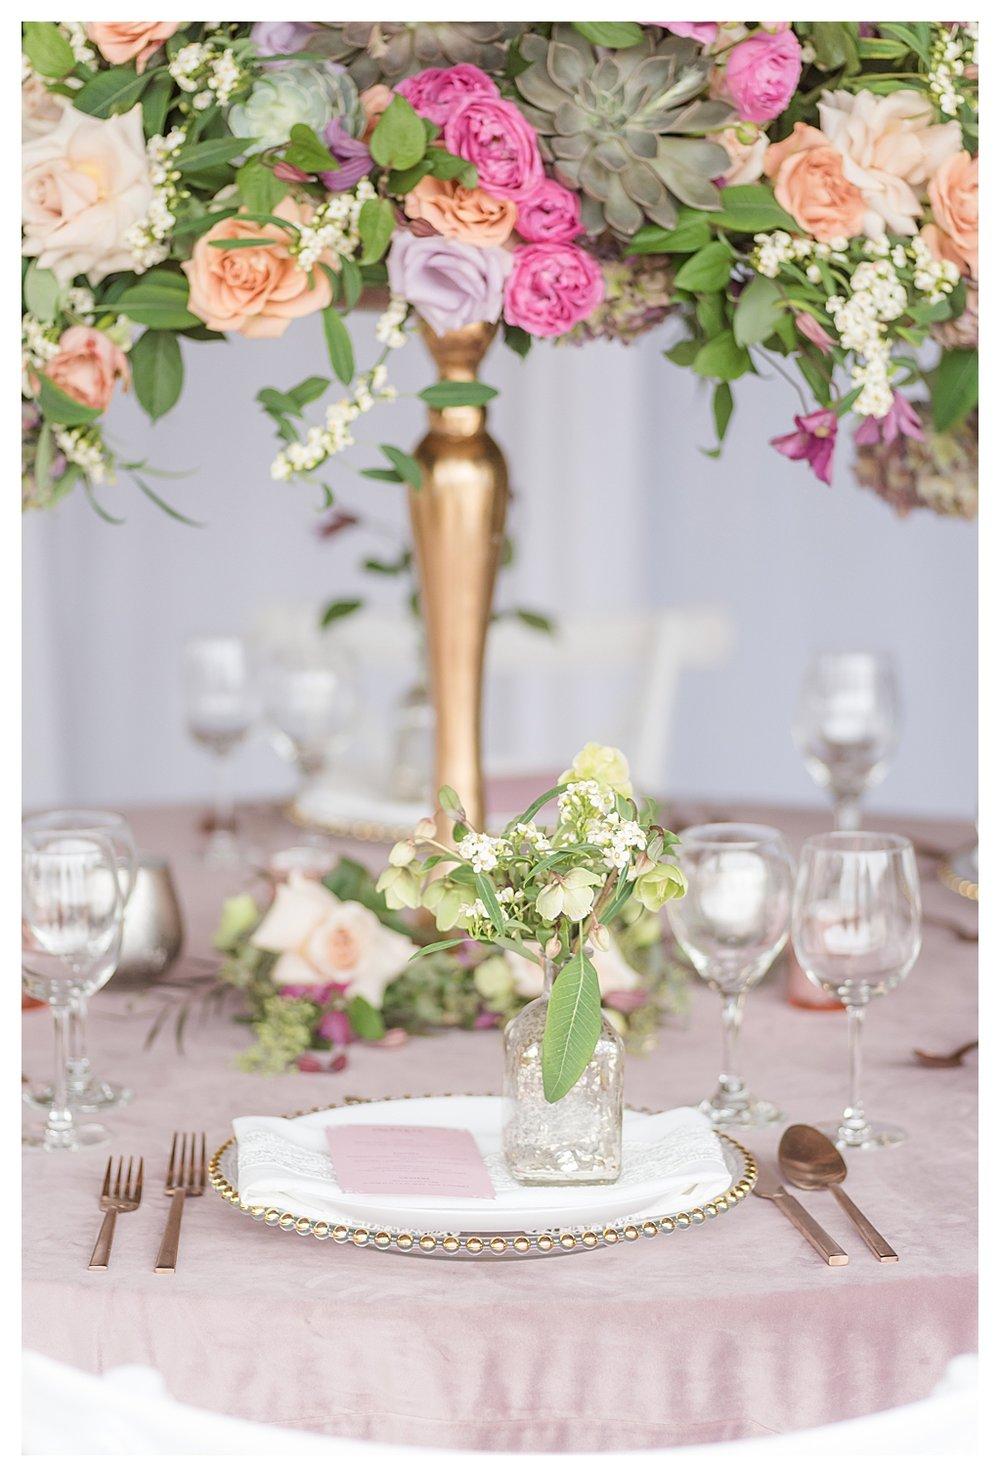 Wedding Photography Wedding Reception Detail Photos What Brides Forget in the Wedding Day Timeline_1286.jpg